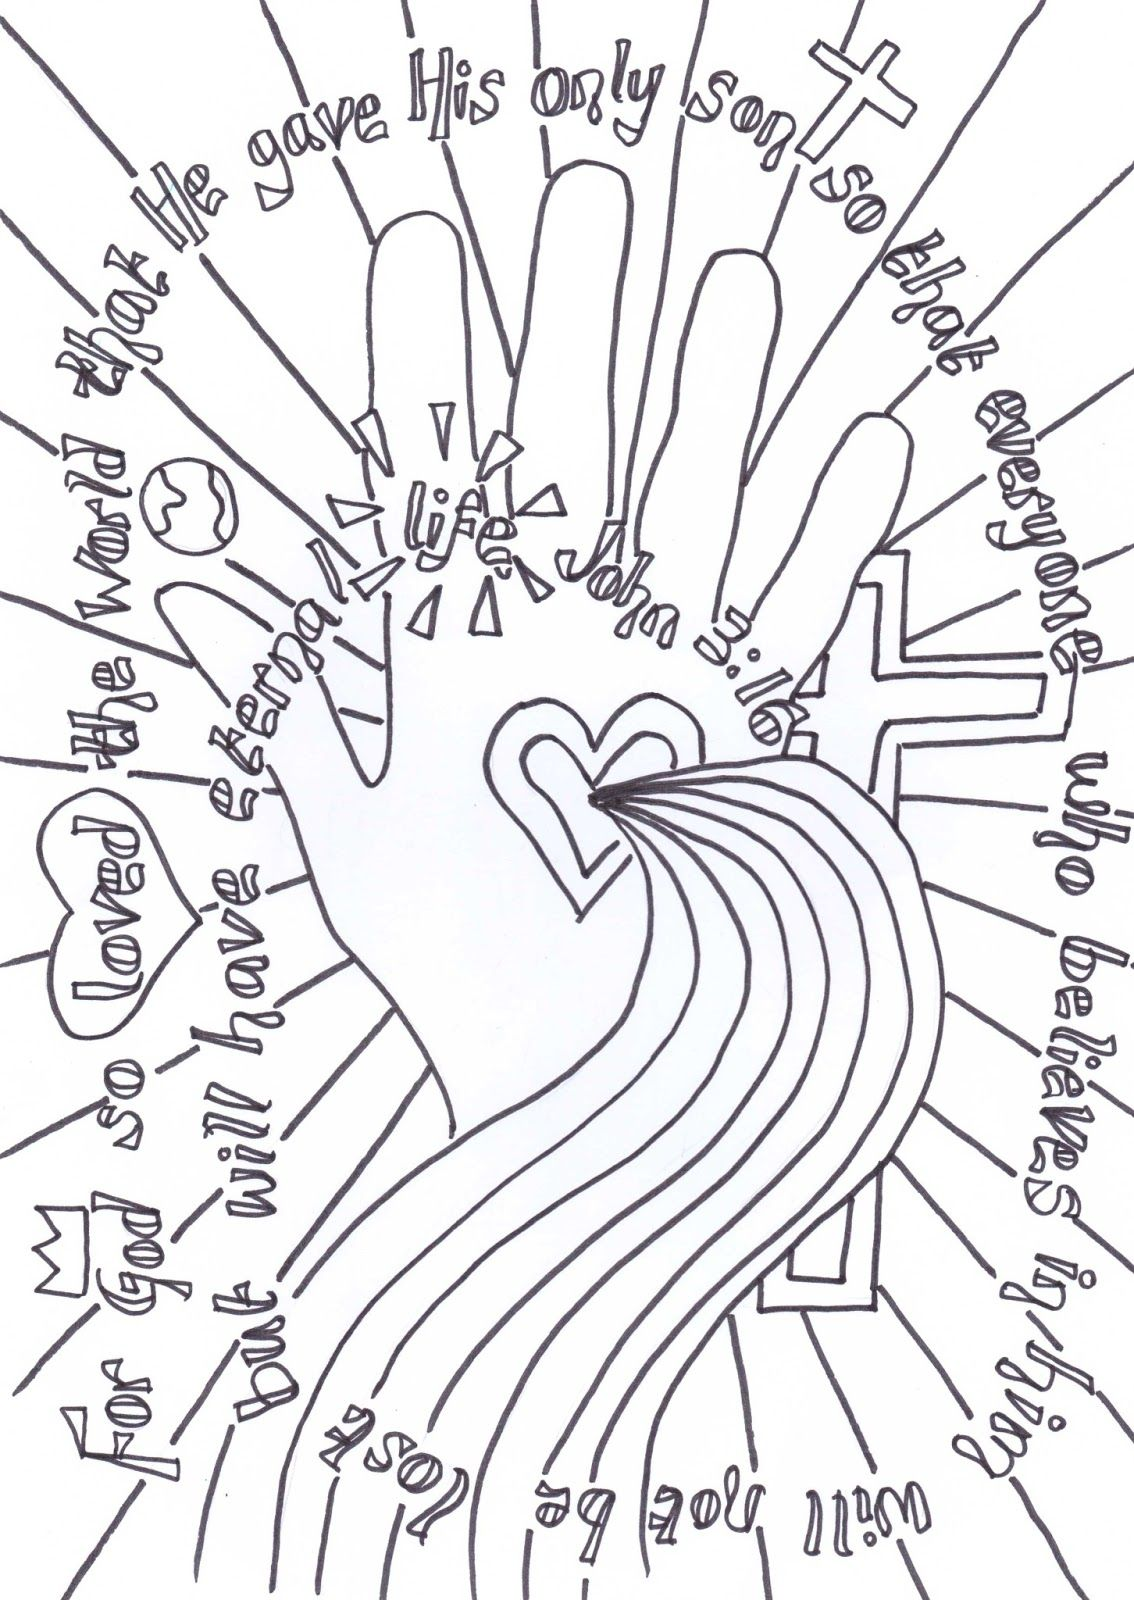 childrens church coloring pages - photo#34